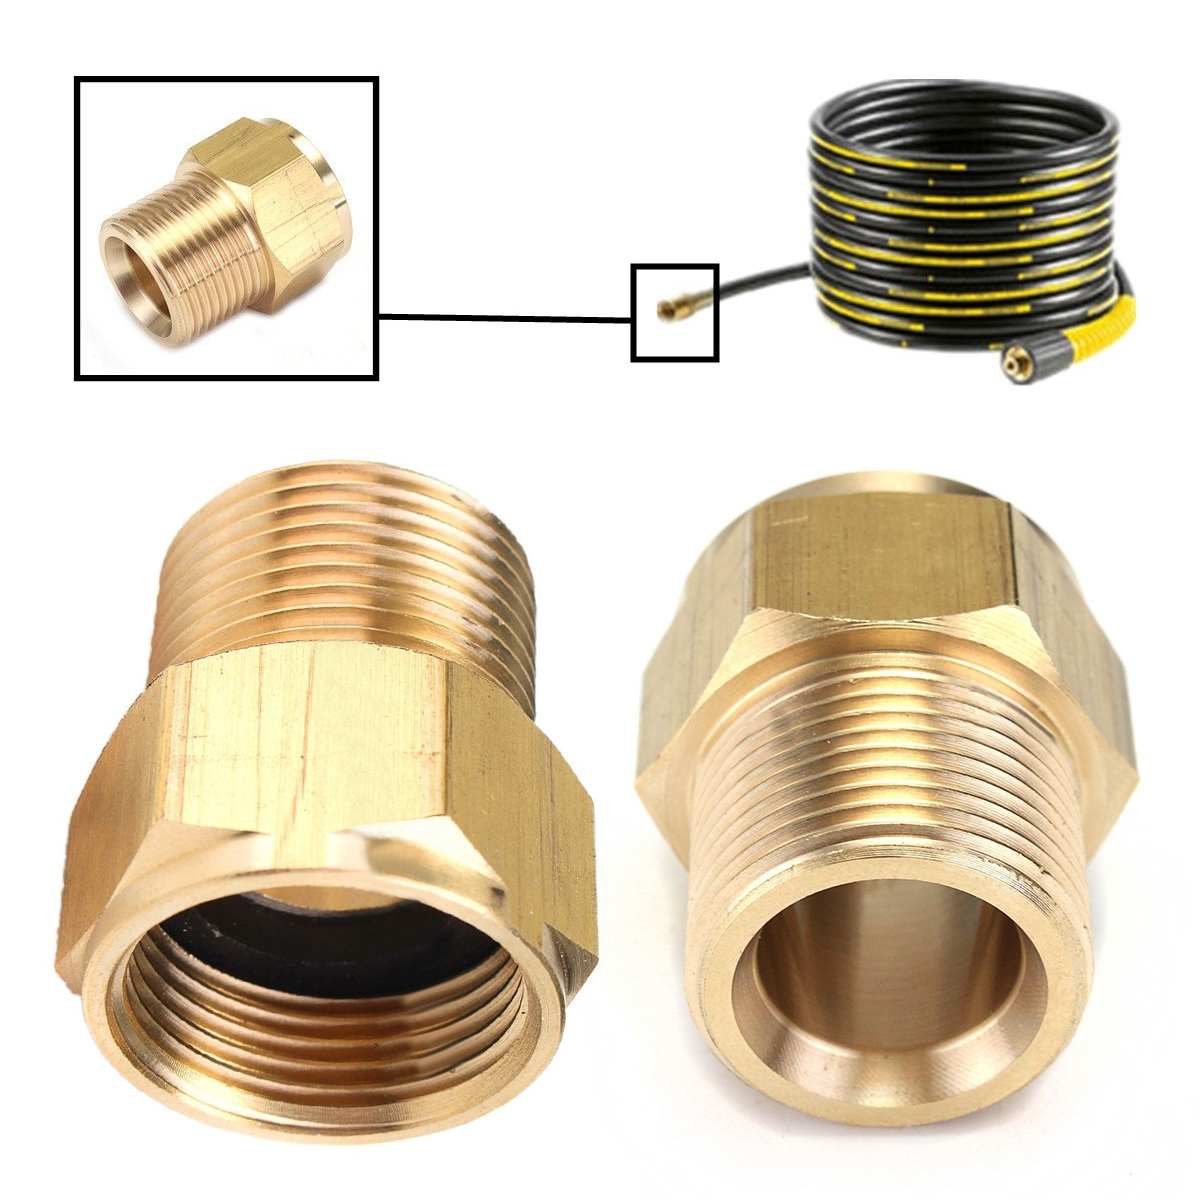 1pc High Pressure Hose Coupling Adapter Connector M22 Male * M22 Female 31*14mm Mayitr For HD HDS Spray Pressure Washer недорого